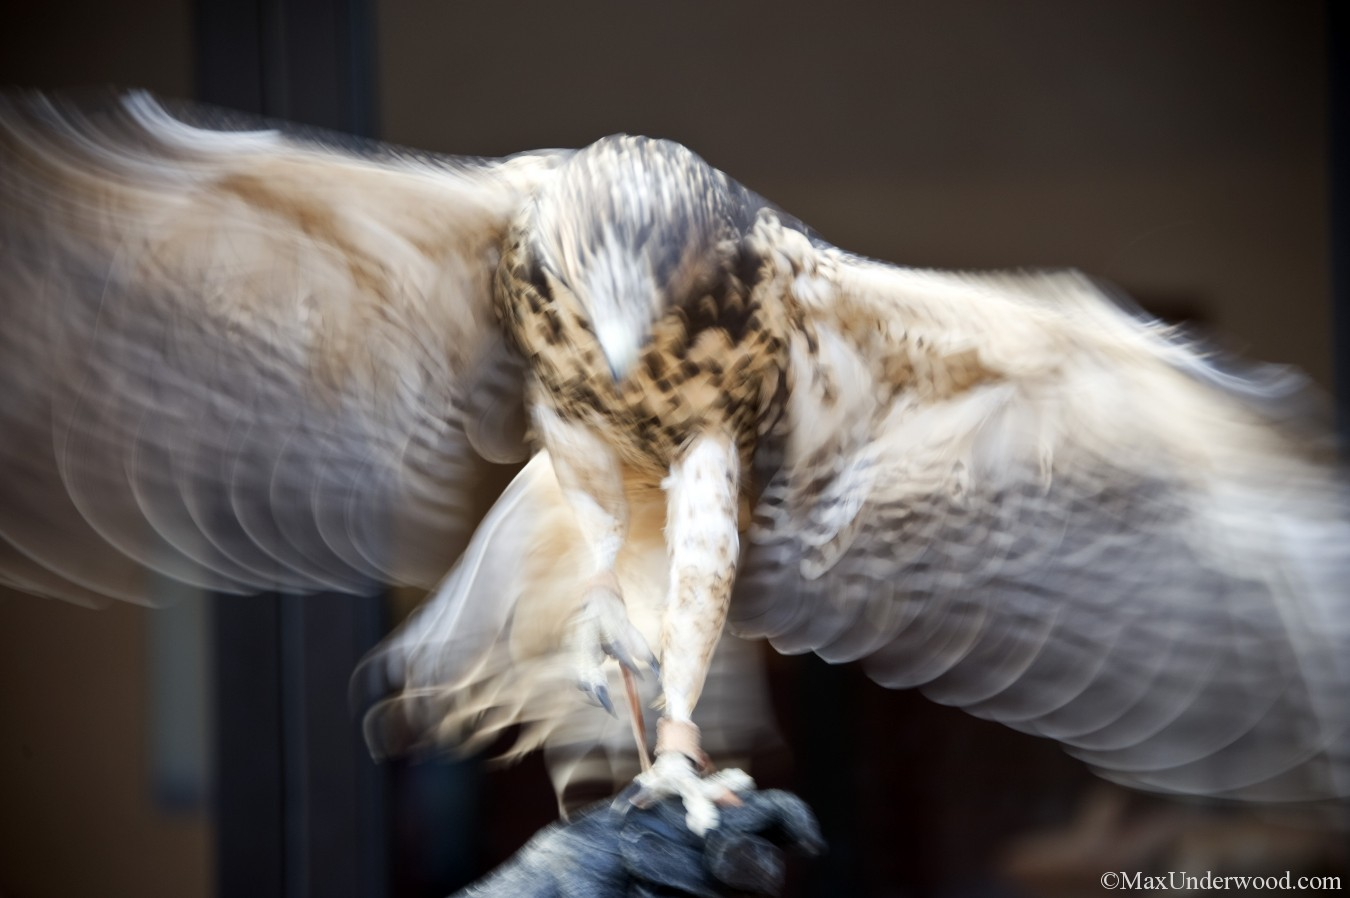 Hawk, Osprey, New Mexico. Abstract image, Animal photography. Santa Fe Raptor Center